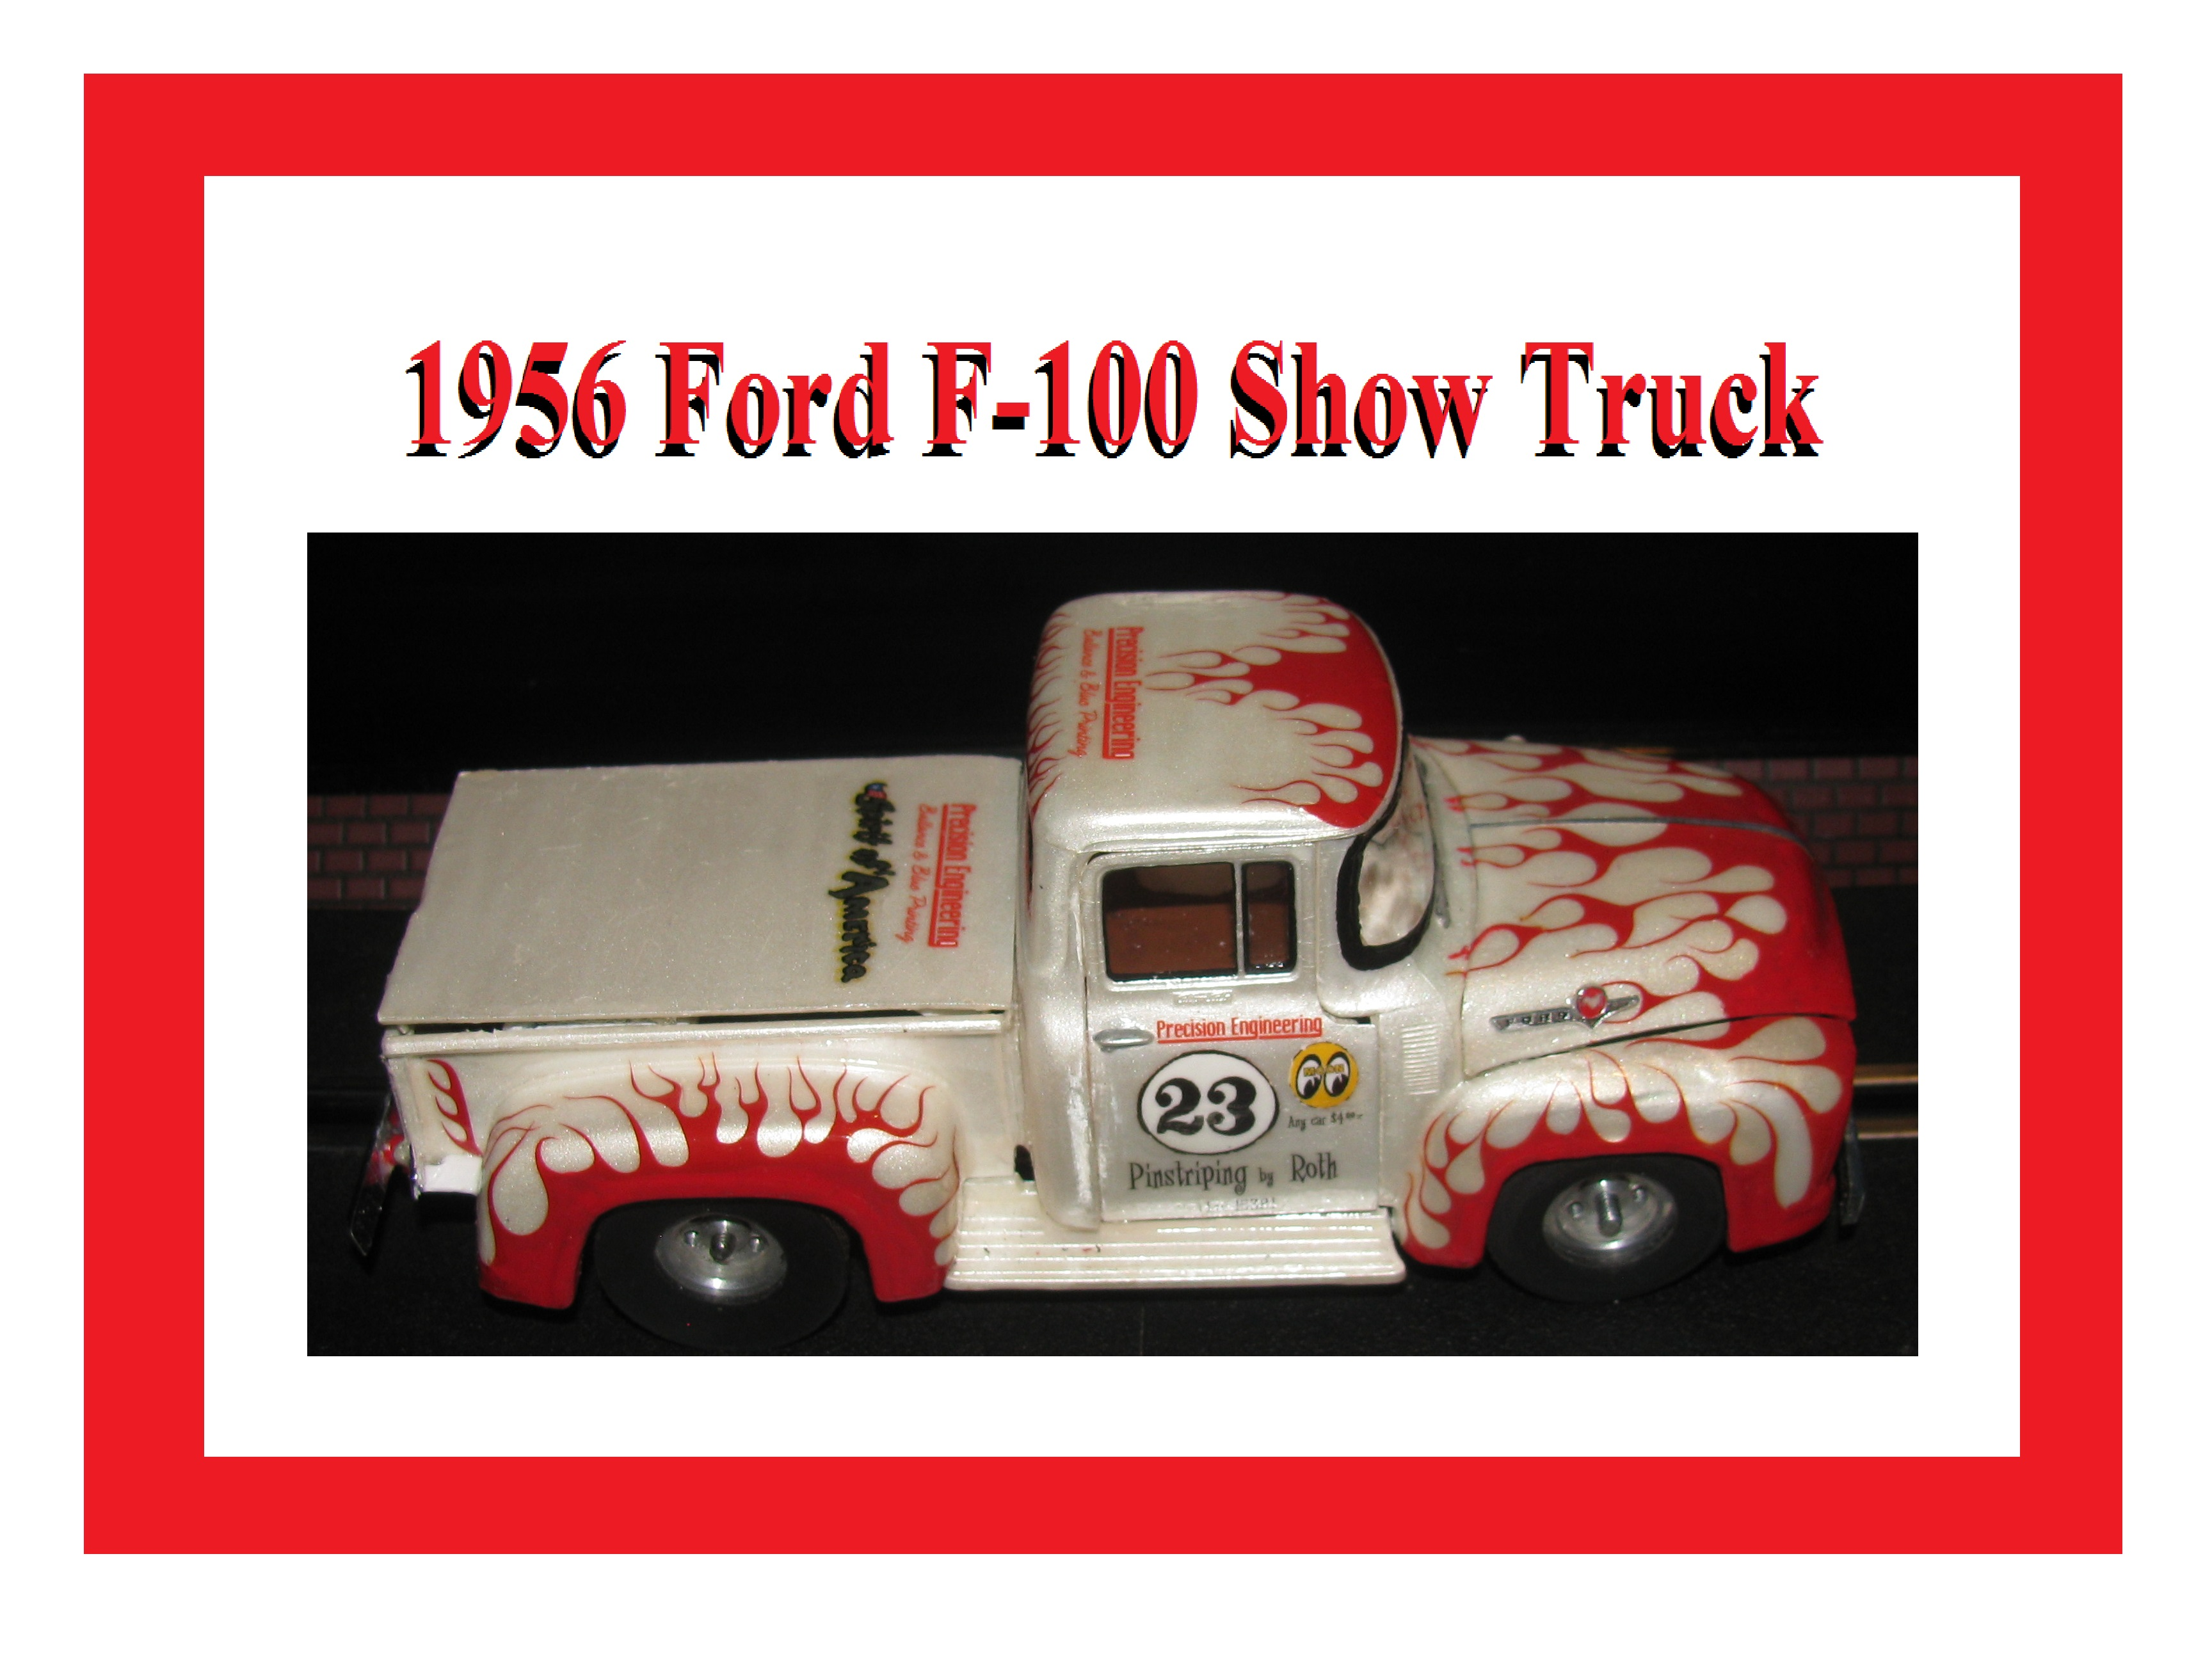 * Winter Super Sale * Revell 1956 Ford F-100 Show Truck in Pearl White with Unique Livery - #23 – 1:24 Scale